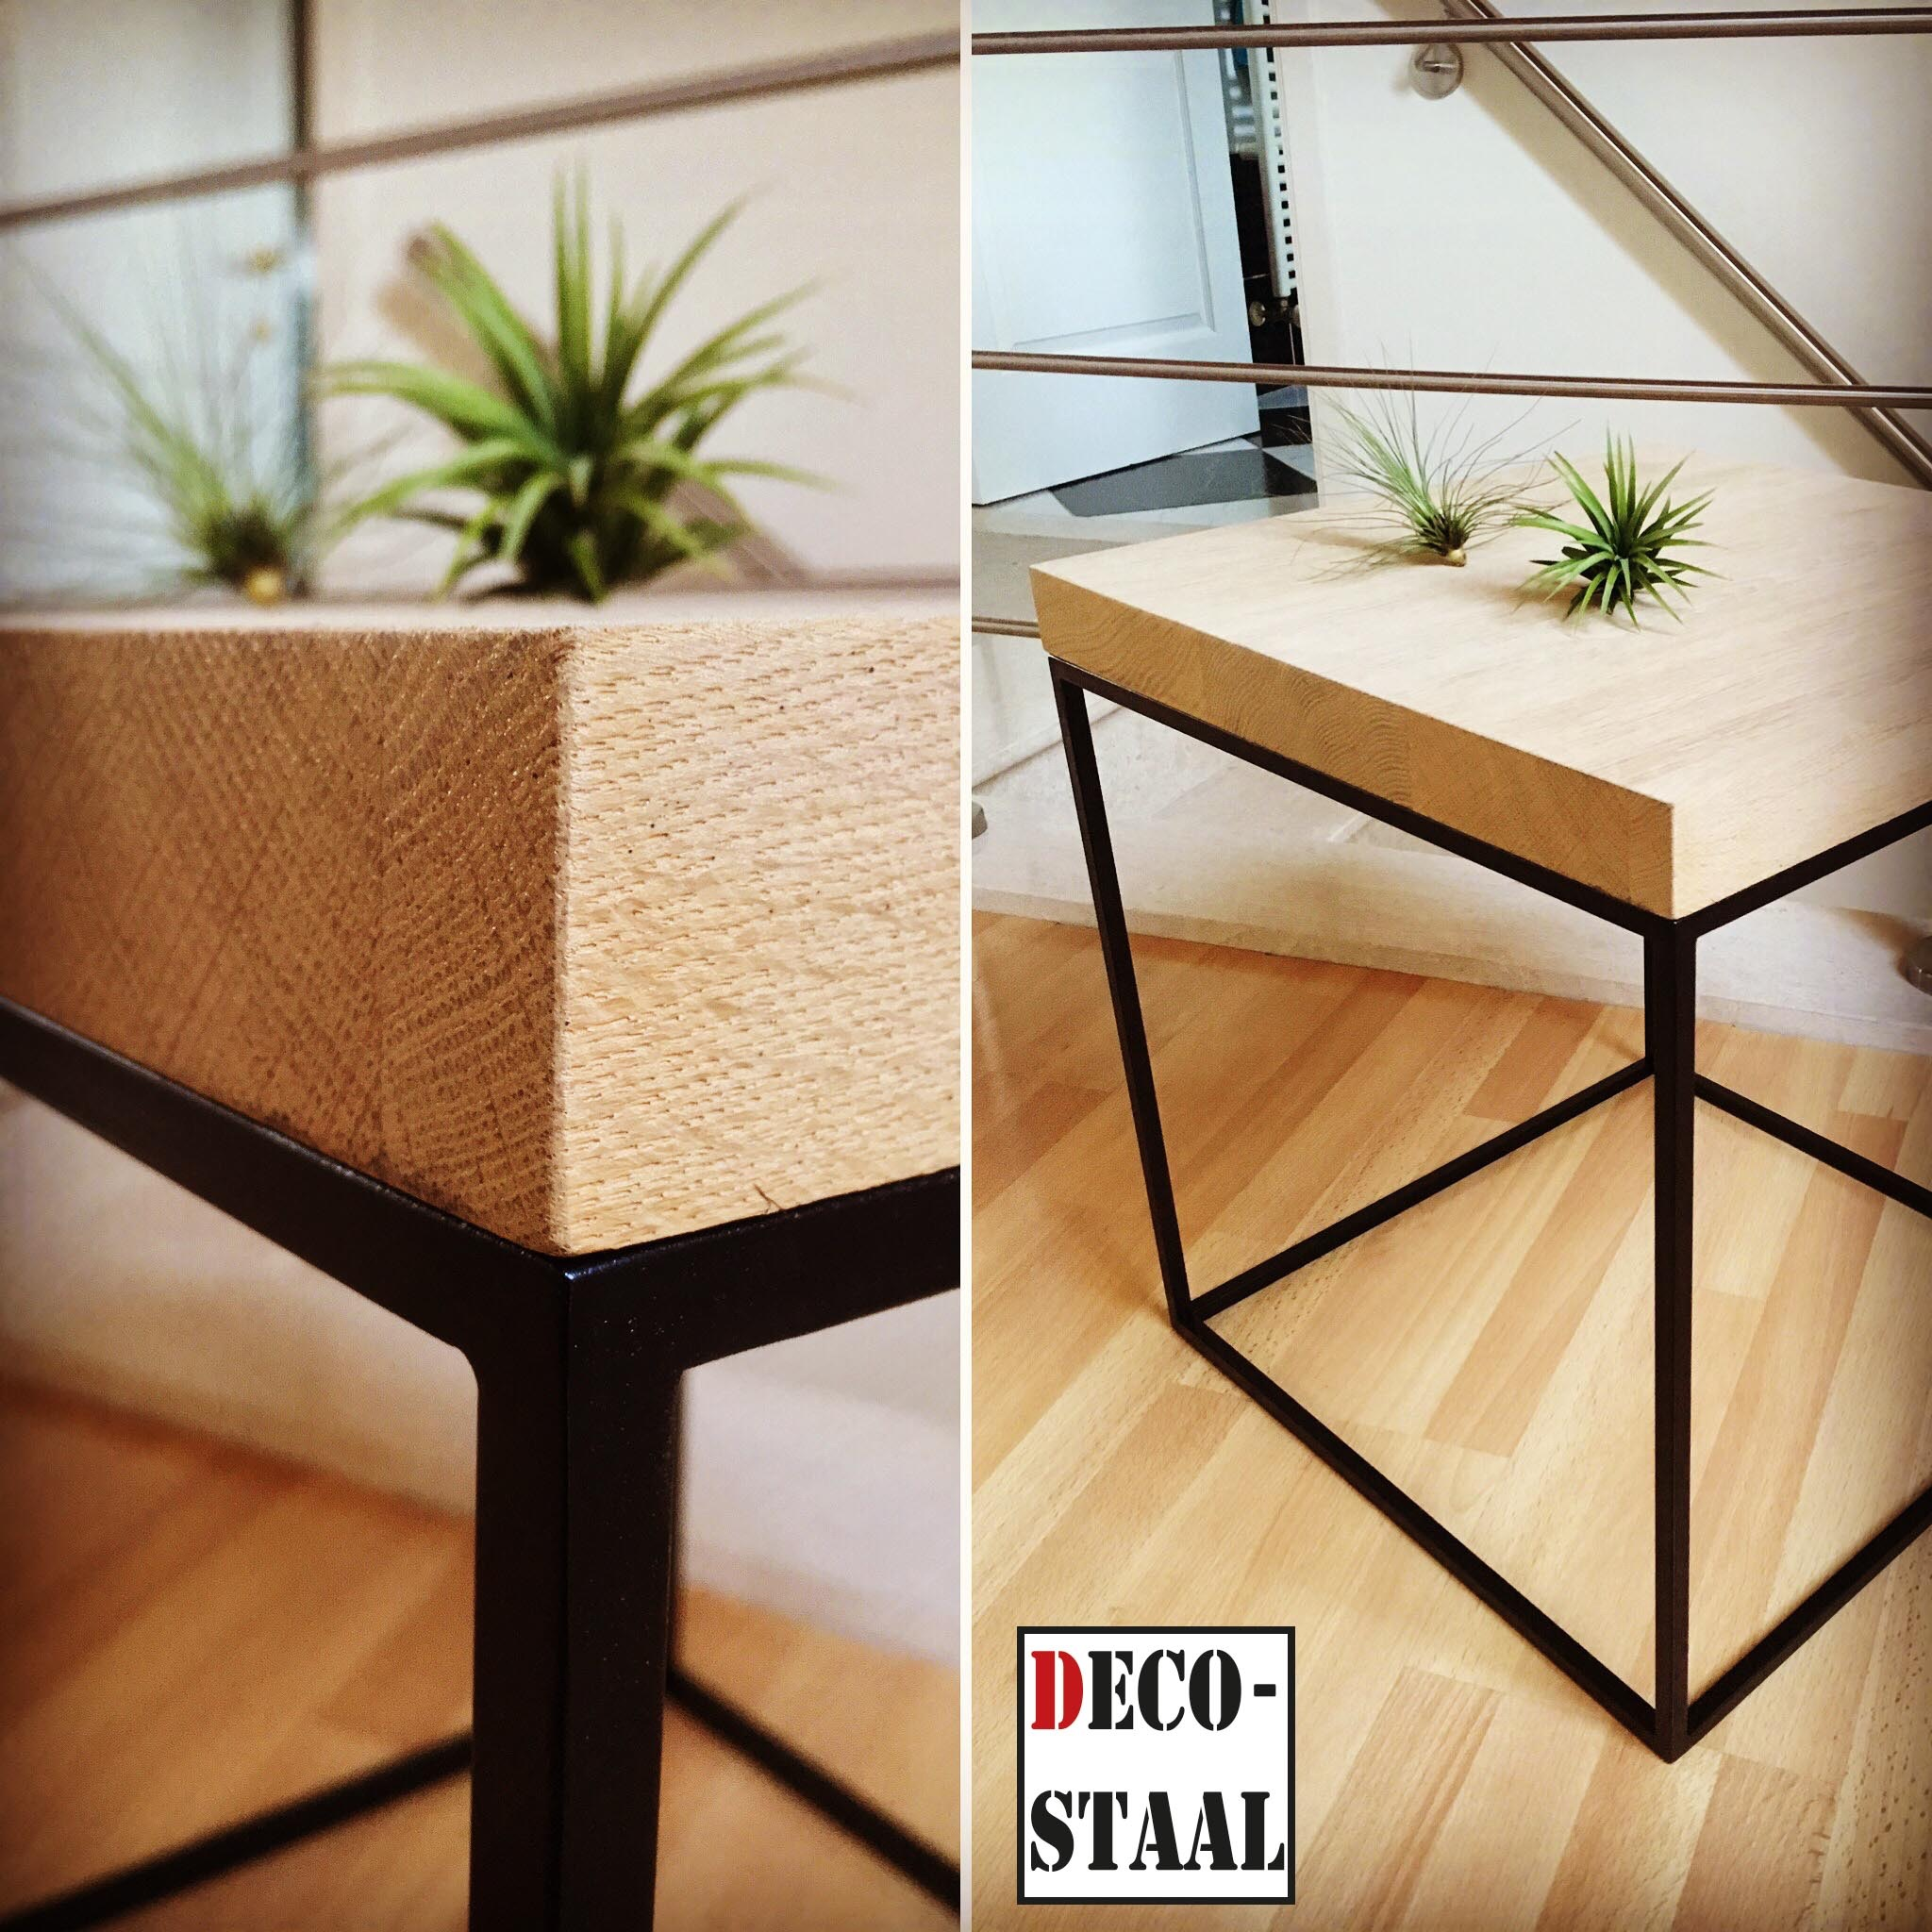 Deco staal handmade steel design - Hout deco trap ...